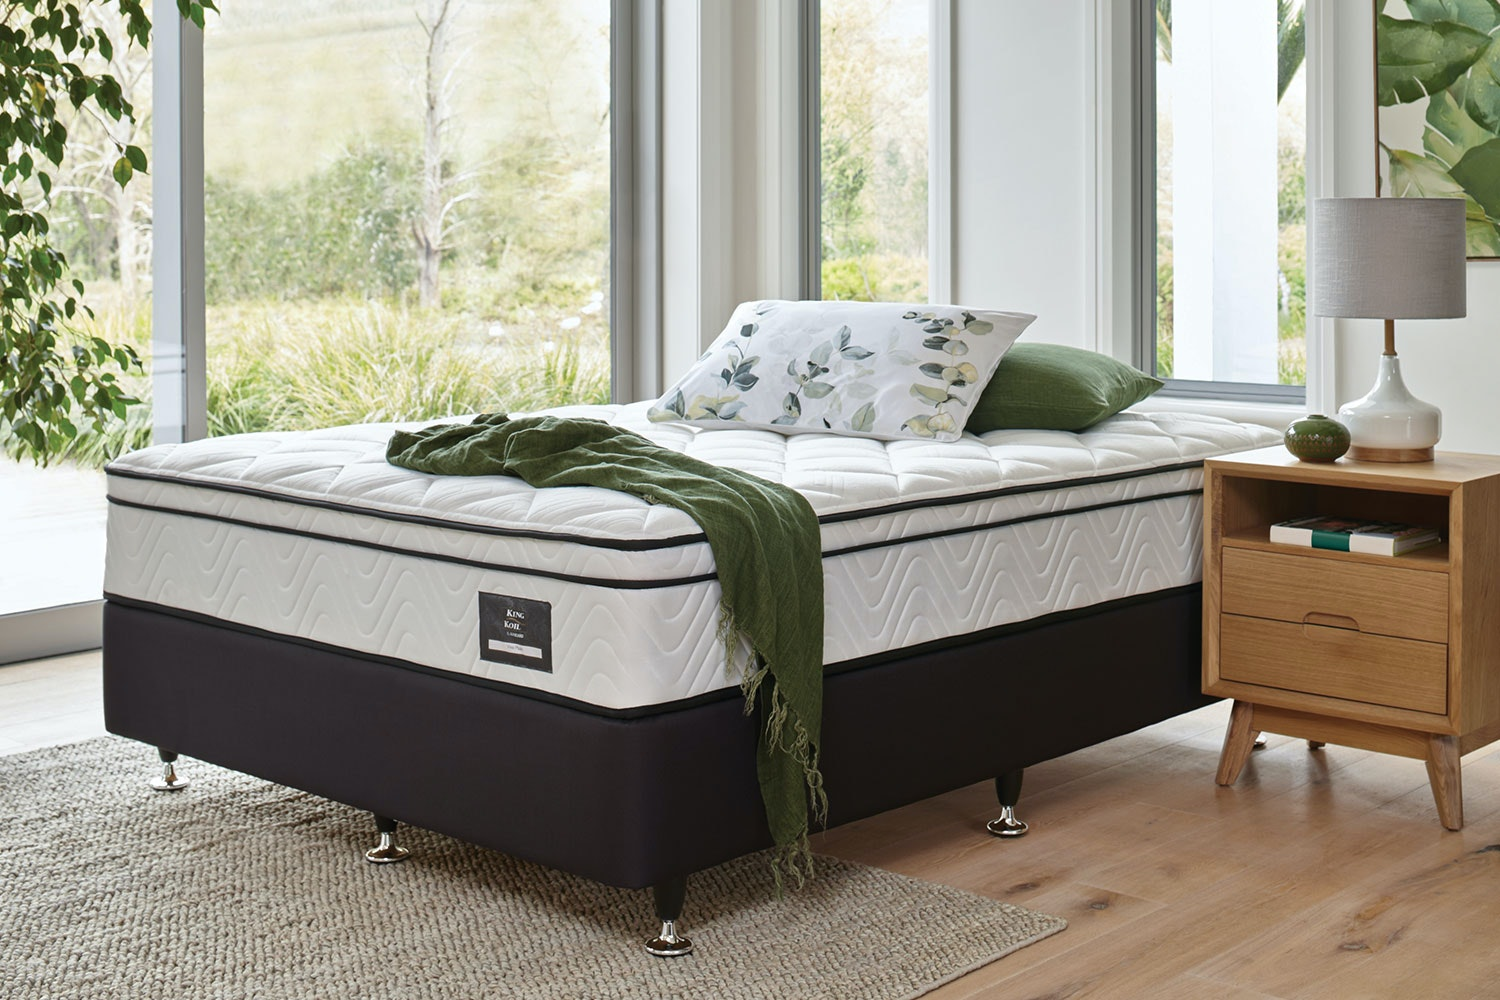 Viva Plush Single Bed By King Koil